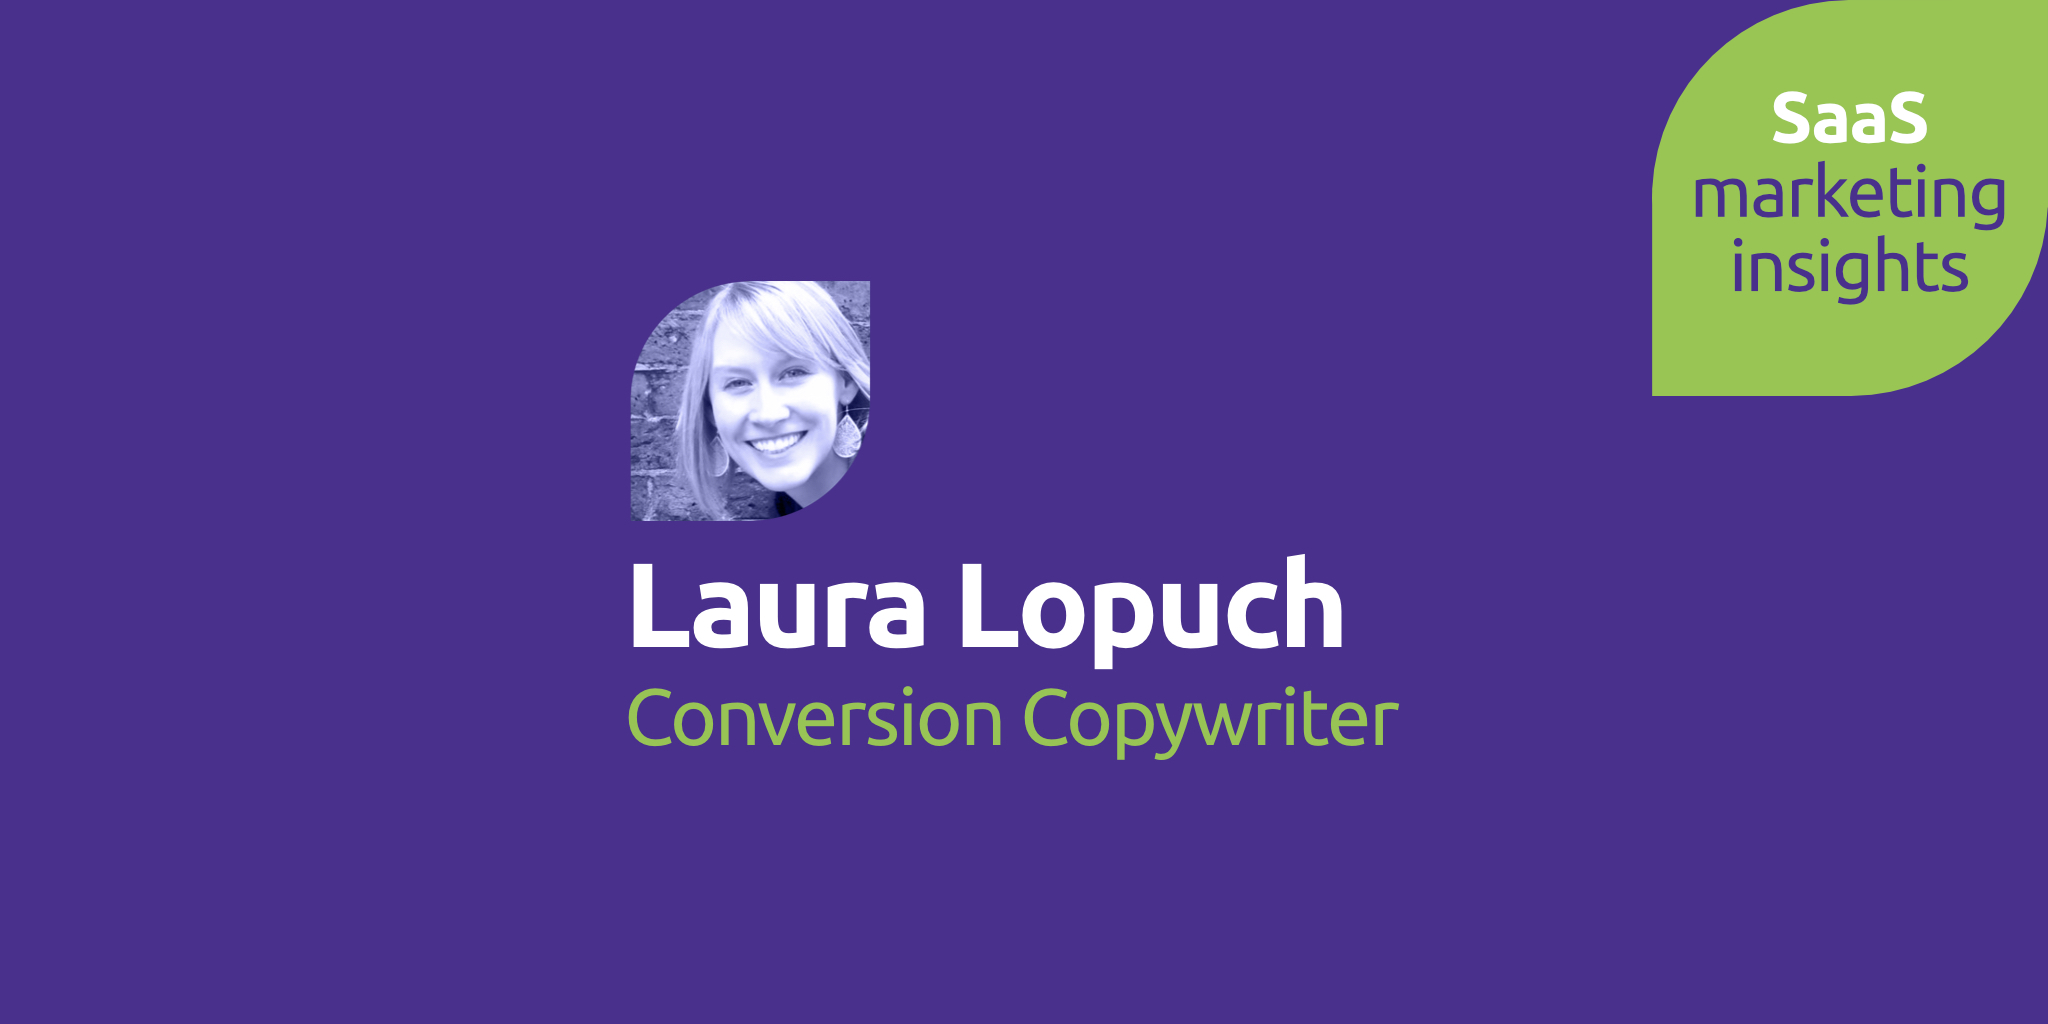 Laura Lopuch, Conversion Copywriter